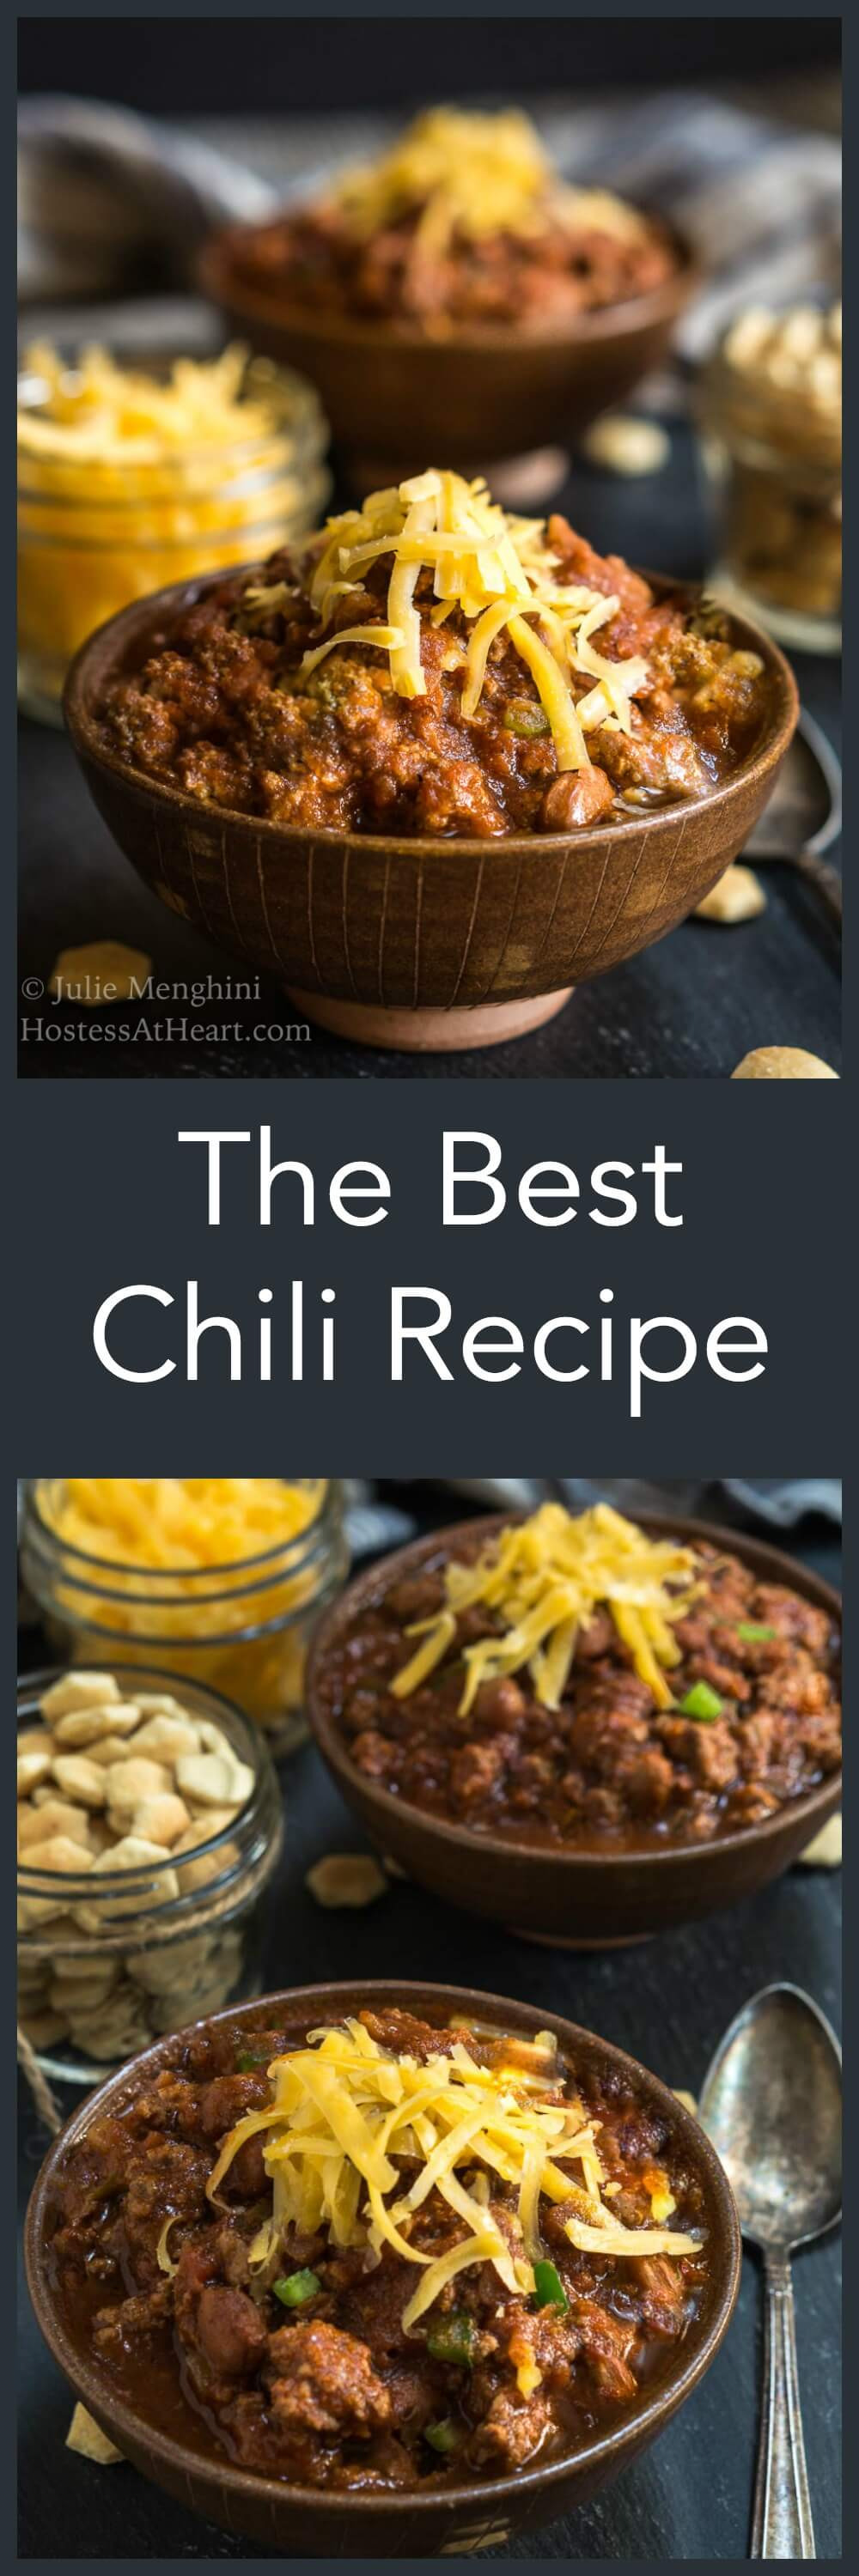 The Best Chili Recipe will change the way you make chili from now on. It has a secret ingredient that takes this dish to the next level. It's easy to make and makes enough for a crowd   HostessAtHeart.com